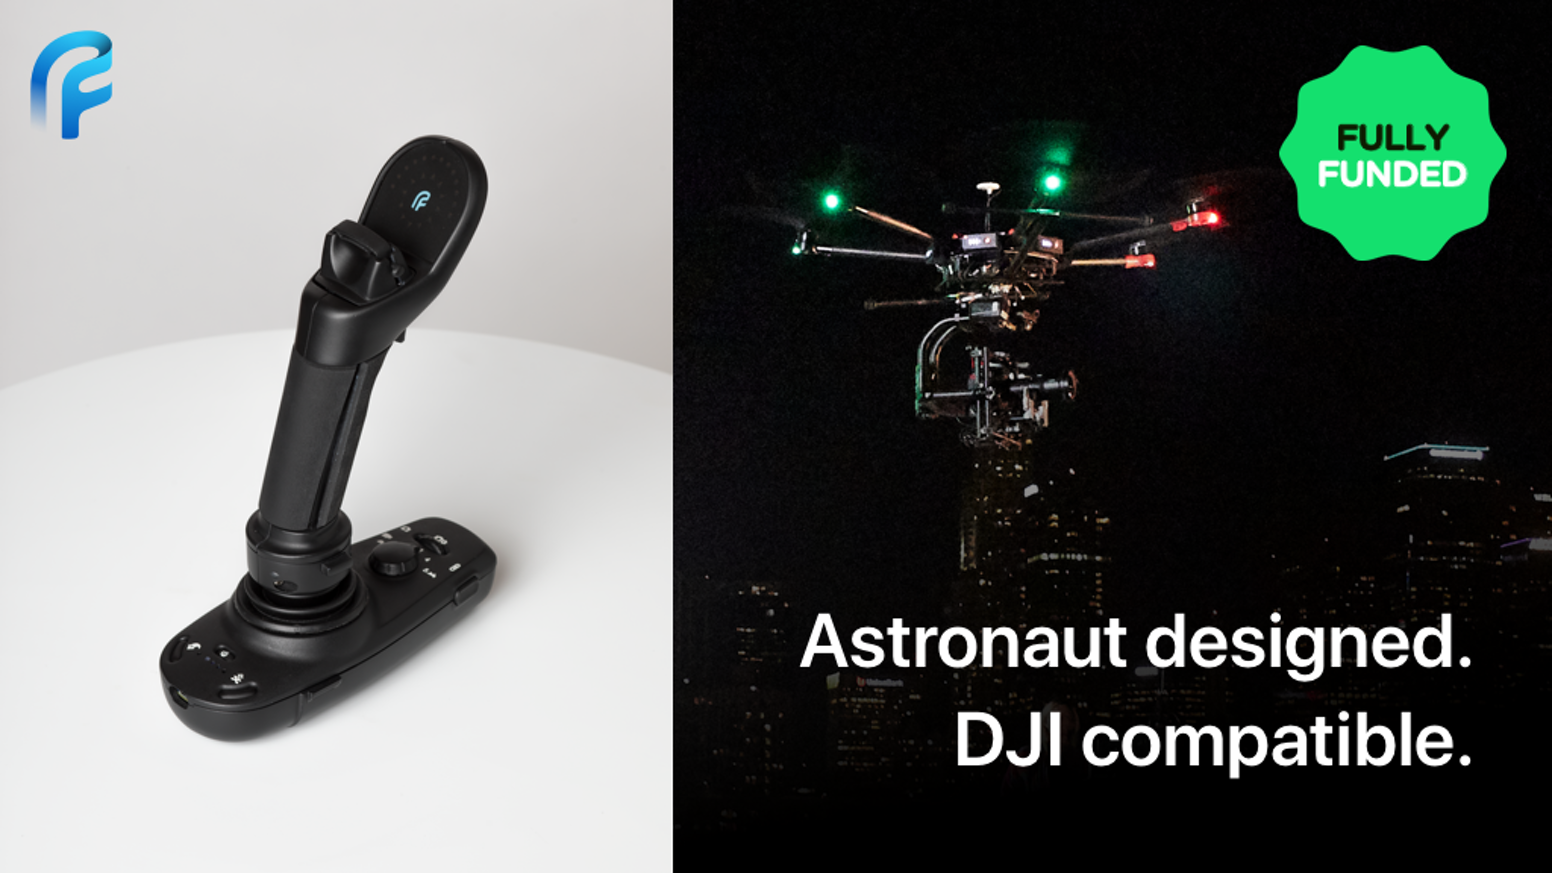 The astronaut-designed, DJI-compatible FT Aviator puts flight control in a single hand, rather than two thumbs, for an intuitive, precise and fun way to fly!